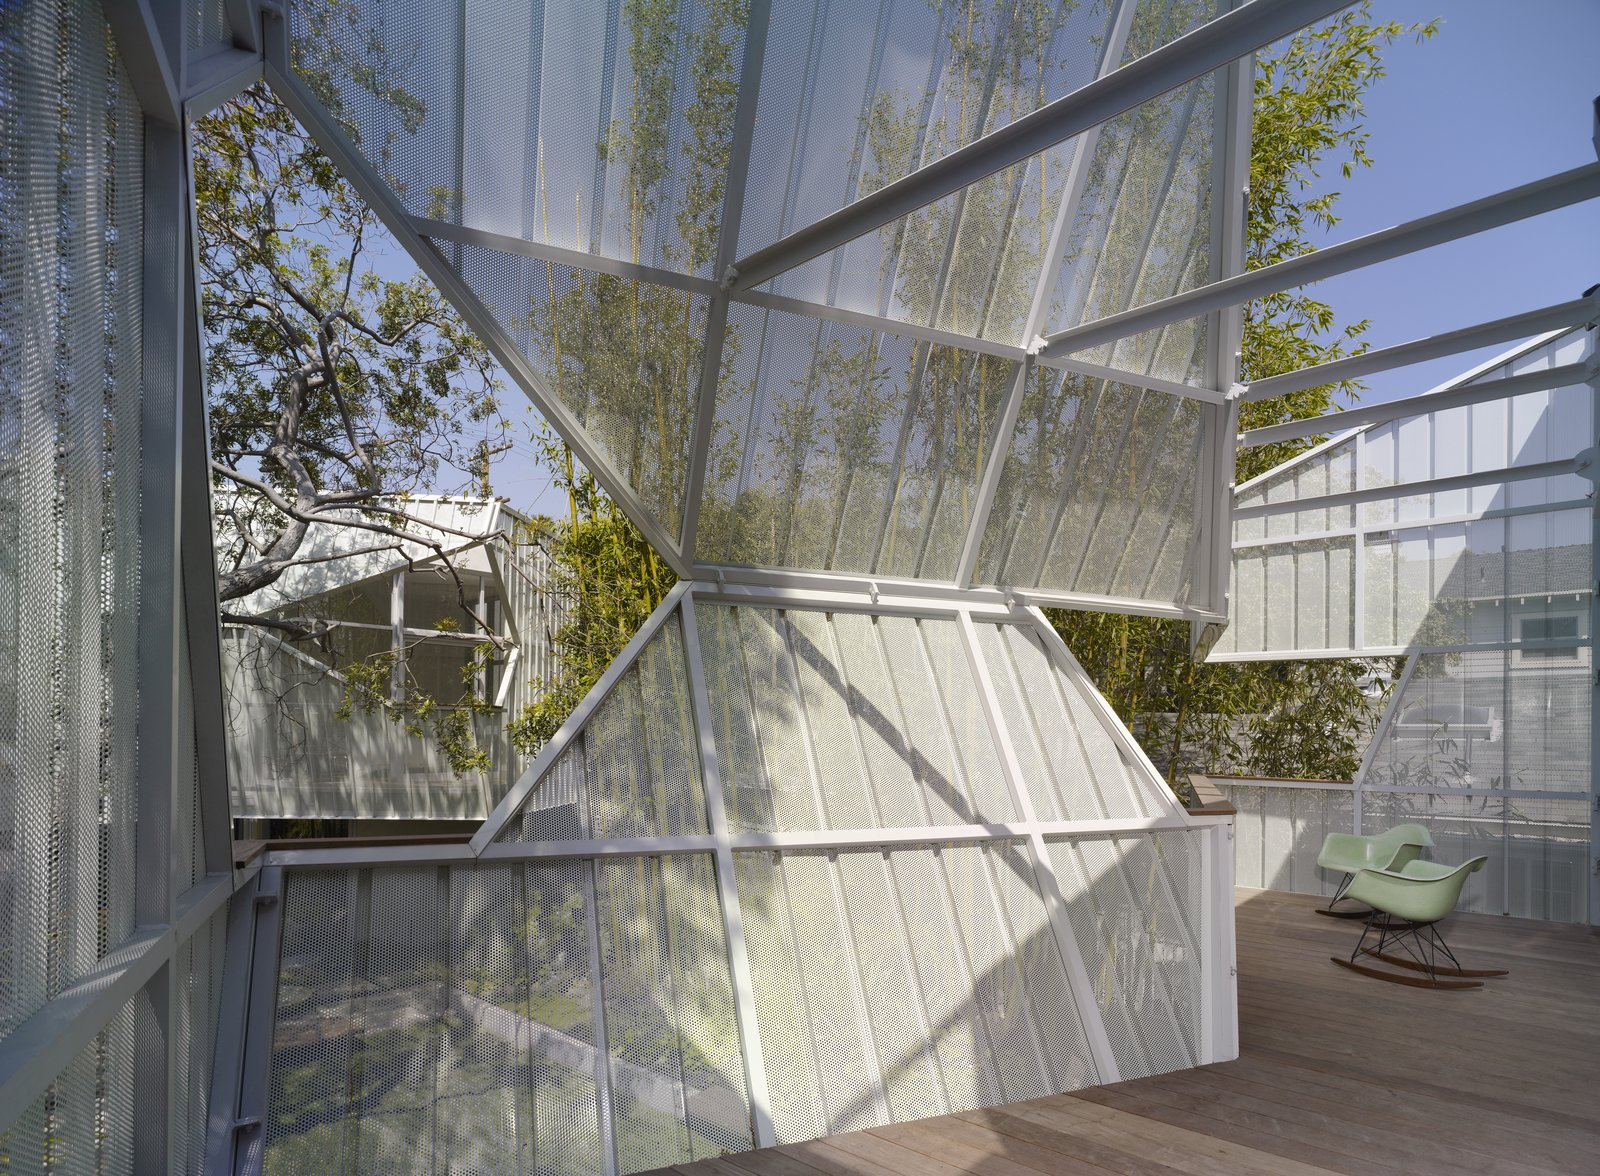 Photo 9 of 10 in A Perforated Screen Brings Privacy and Natural Light to This Bold Venice Home